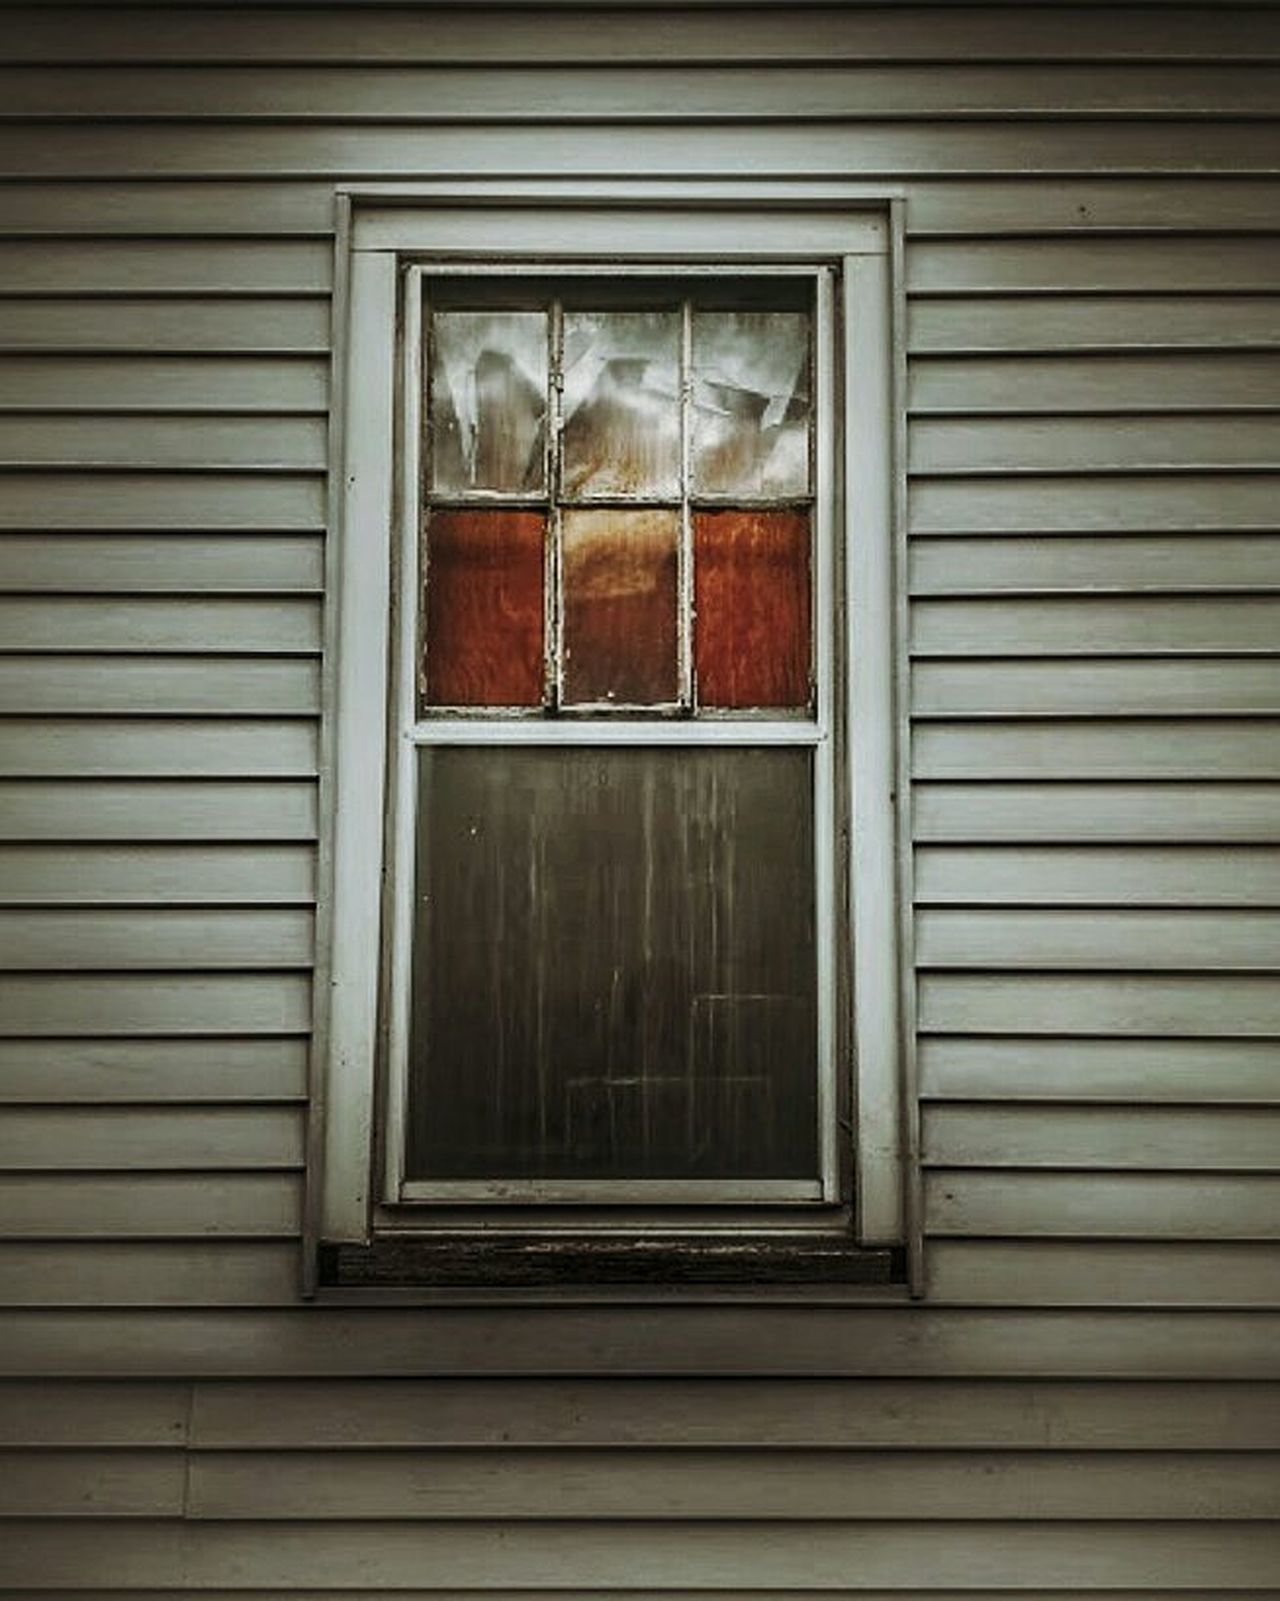 Insidious... Building Exterior Window Close-up Decayed Beauty Urbexphotography Broken Window Abandoned Windows Abandoned Places EyeEm Gallery Creepy Houses Creepy Atmoshpere Weathered AMPt - My Perspective Abandoned & Derelict Tresspassing For Art AMPt - Abandon Damaged AMPt - Street Abandoned Buildings Residential Building Urban Lifestyle EyeEm_abandonment